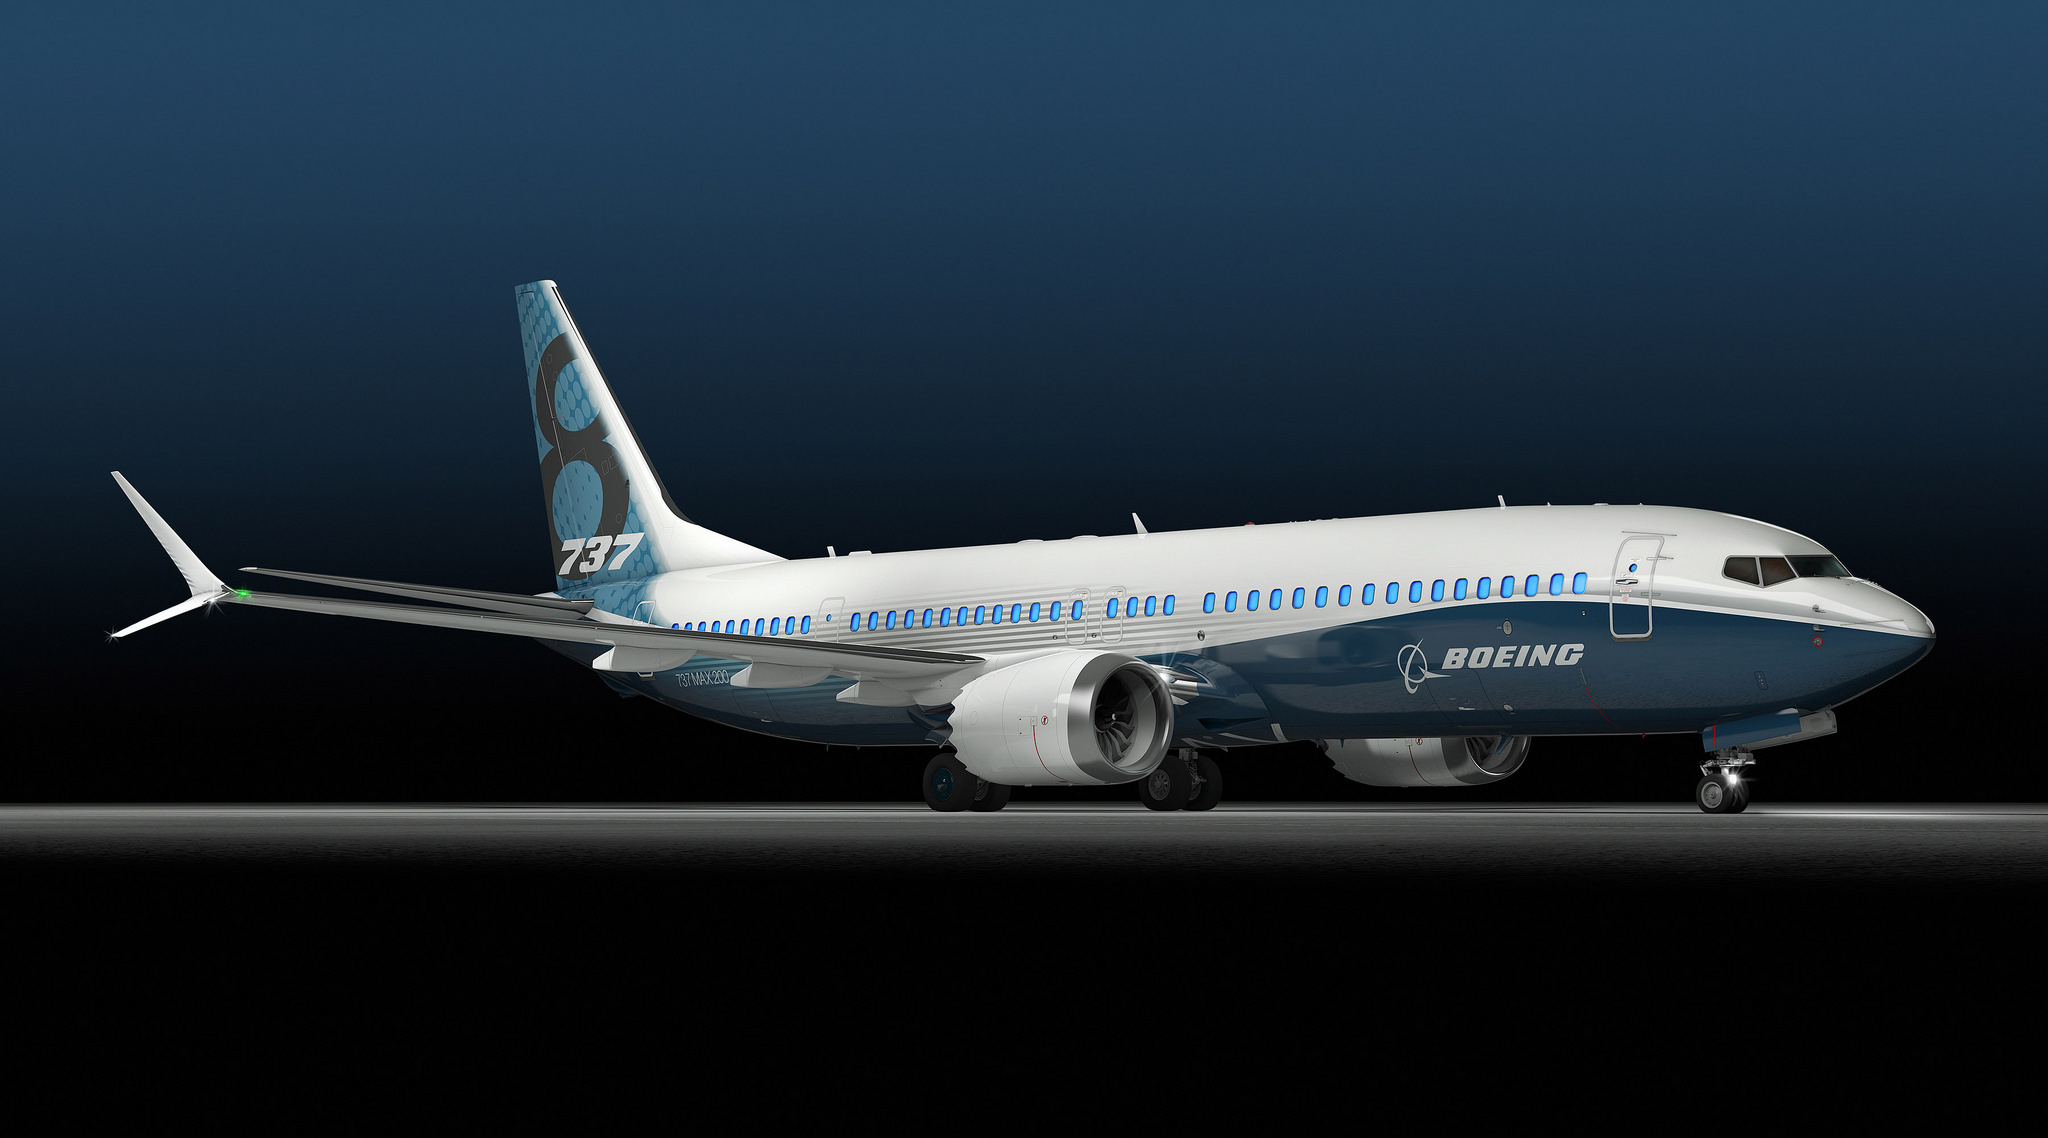 Boeing 737 MAX 8 par Charly W. Karl sous (CC BY-ND 2.0)